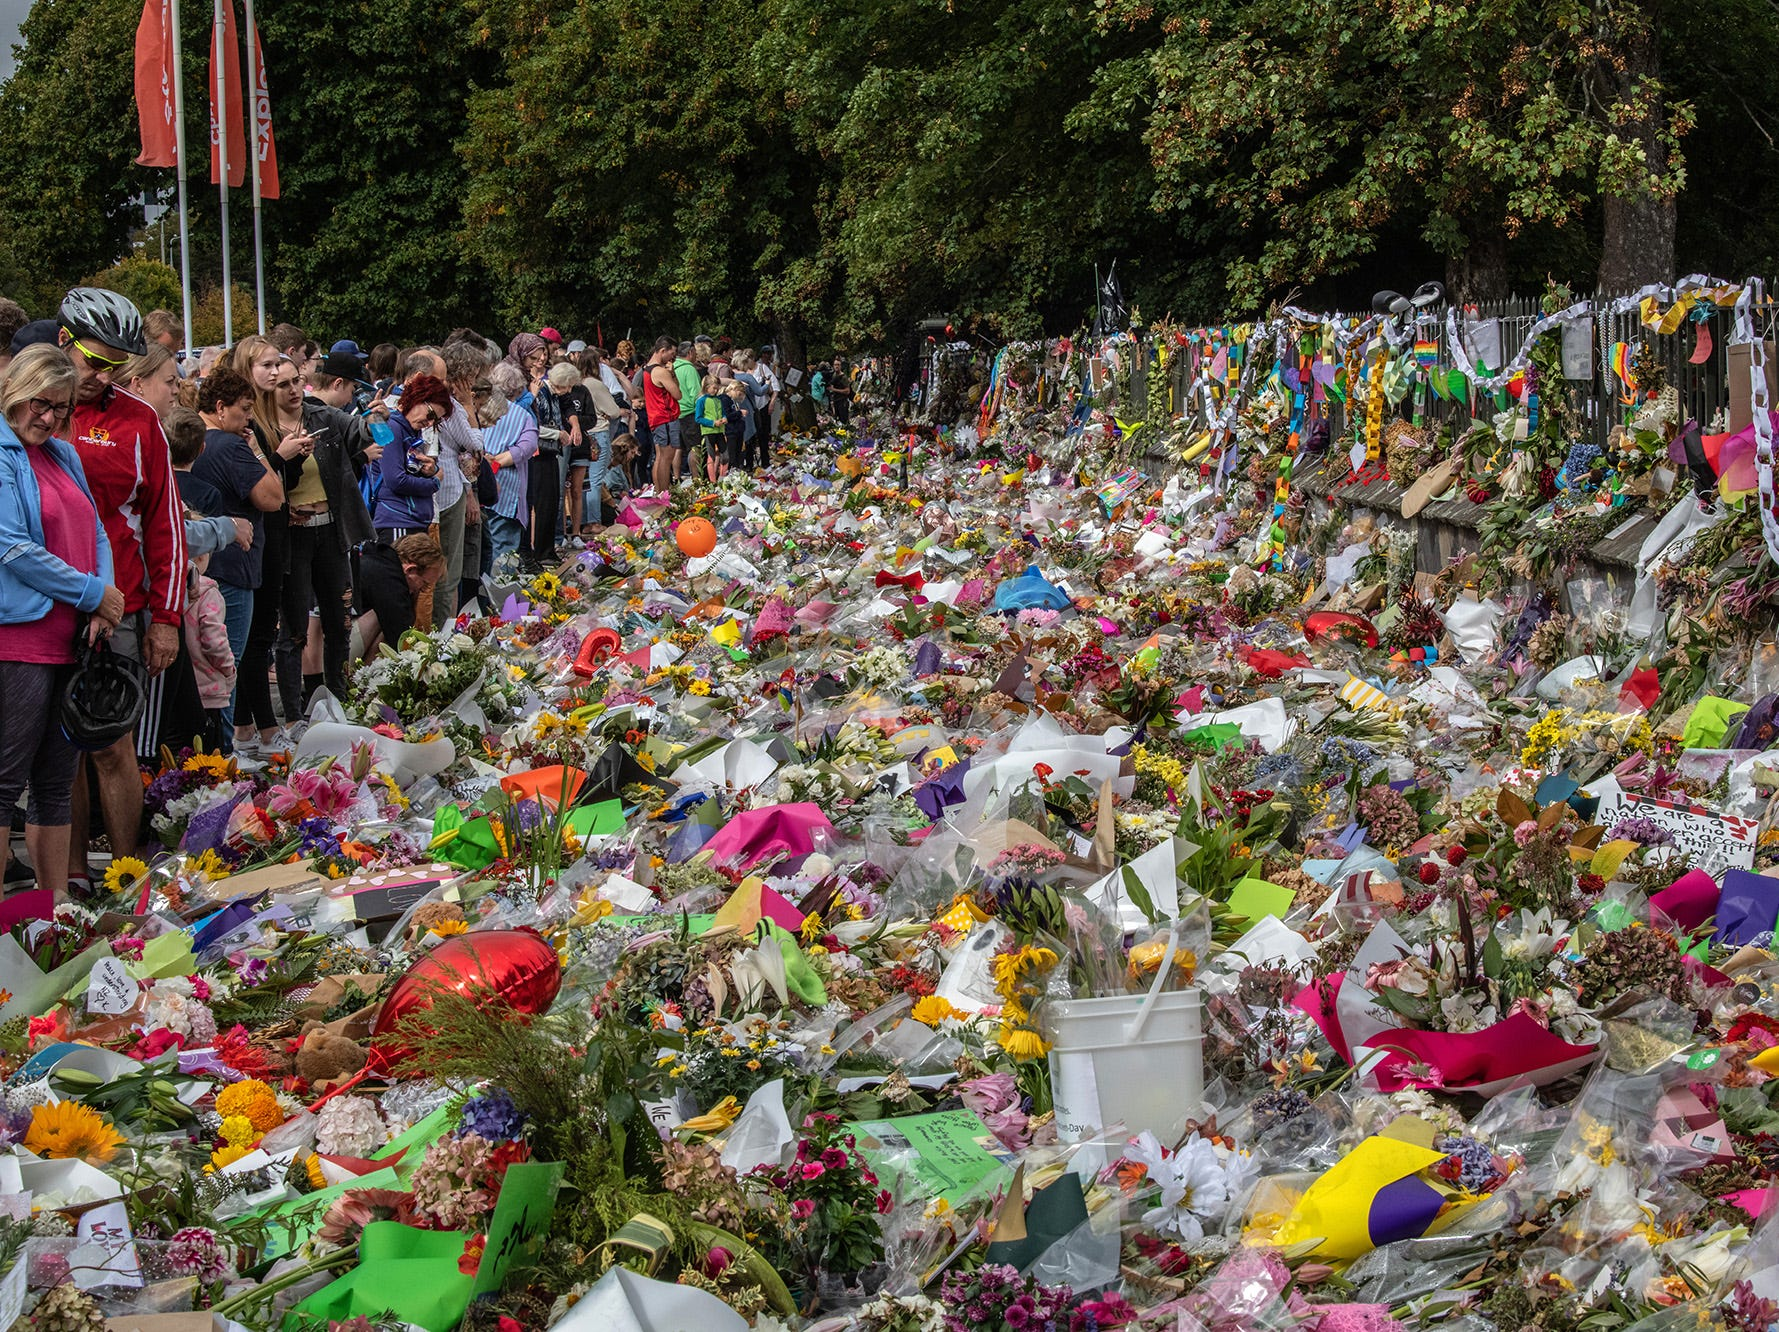 People view flowers and tributes as others nearby take part in a march to remember victims of the Christchurch mosque attacks, on March 23, 2019 in Christchurch, New Zealand.